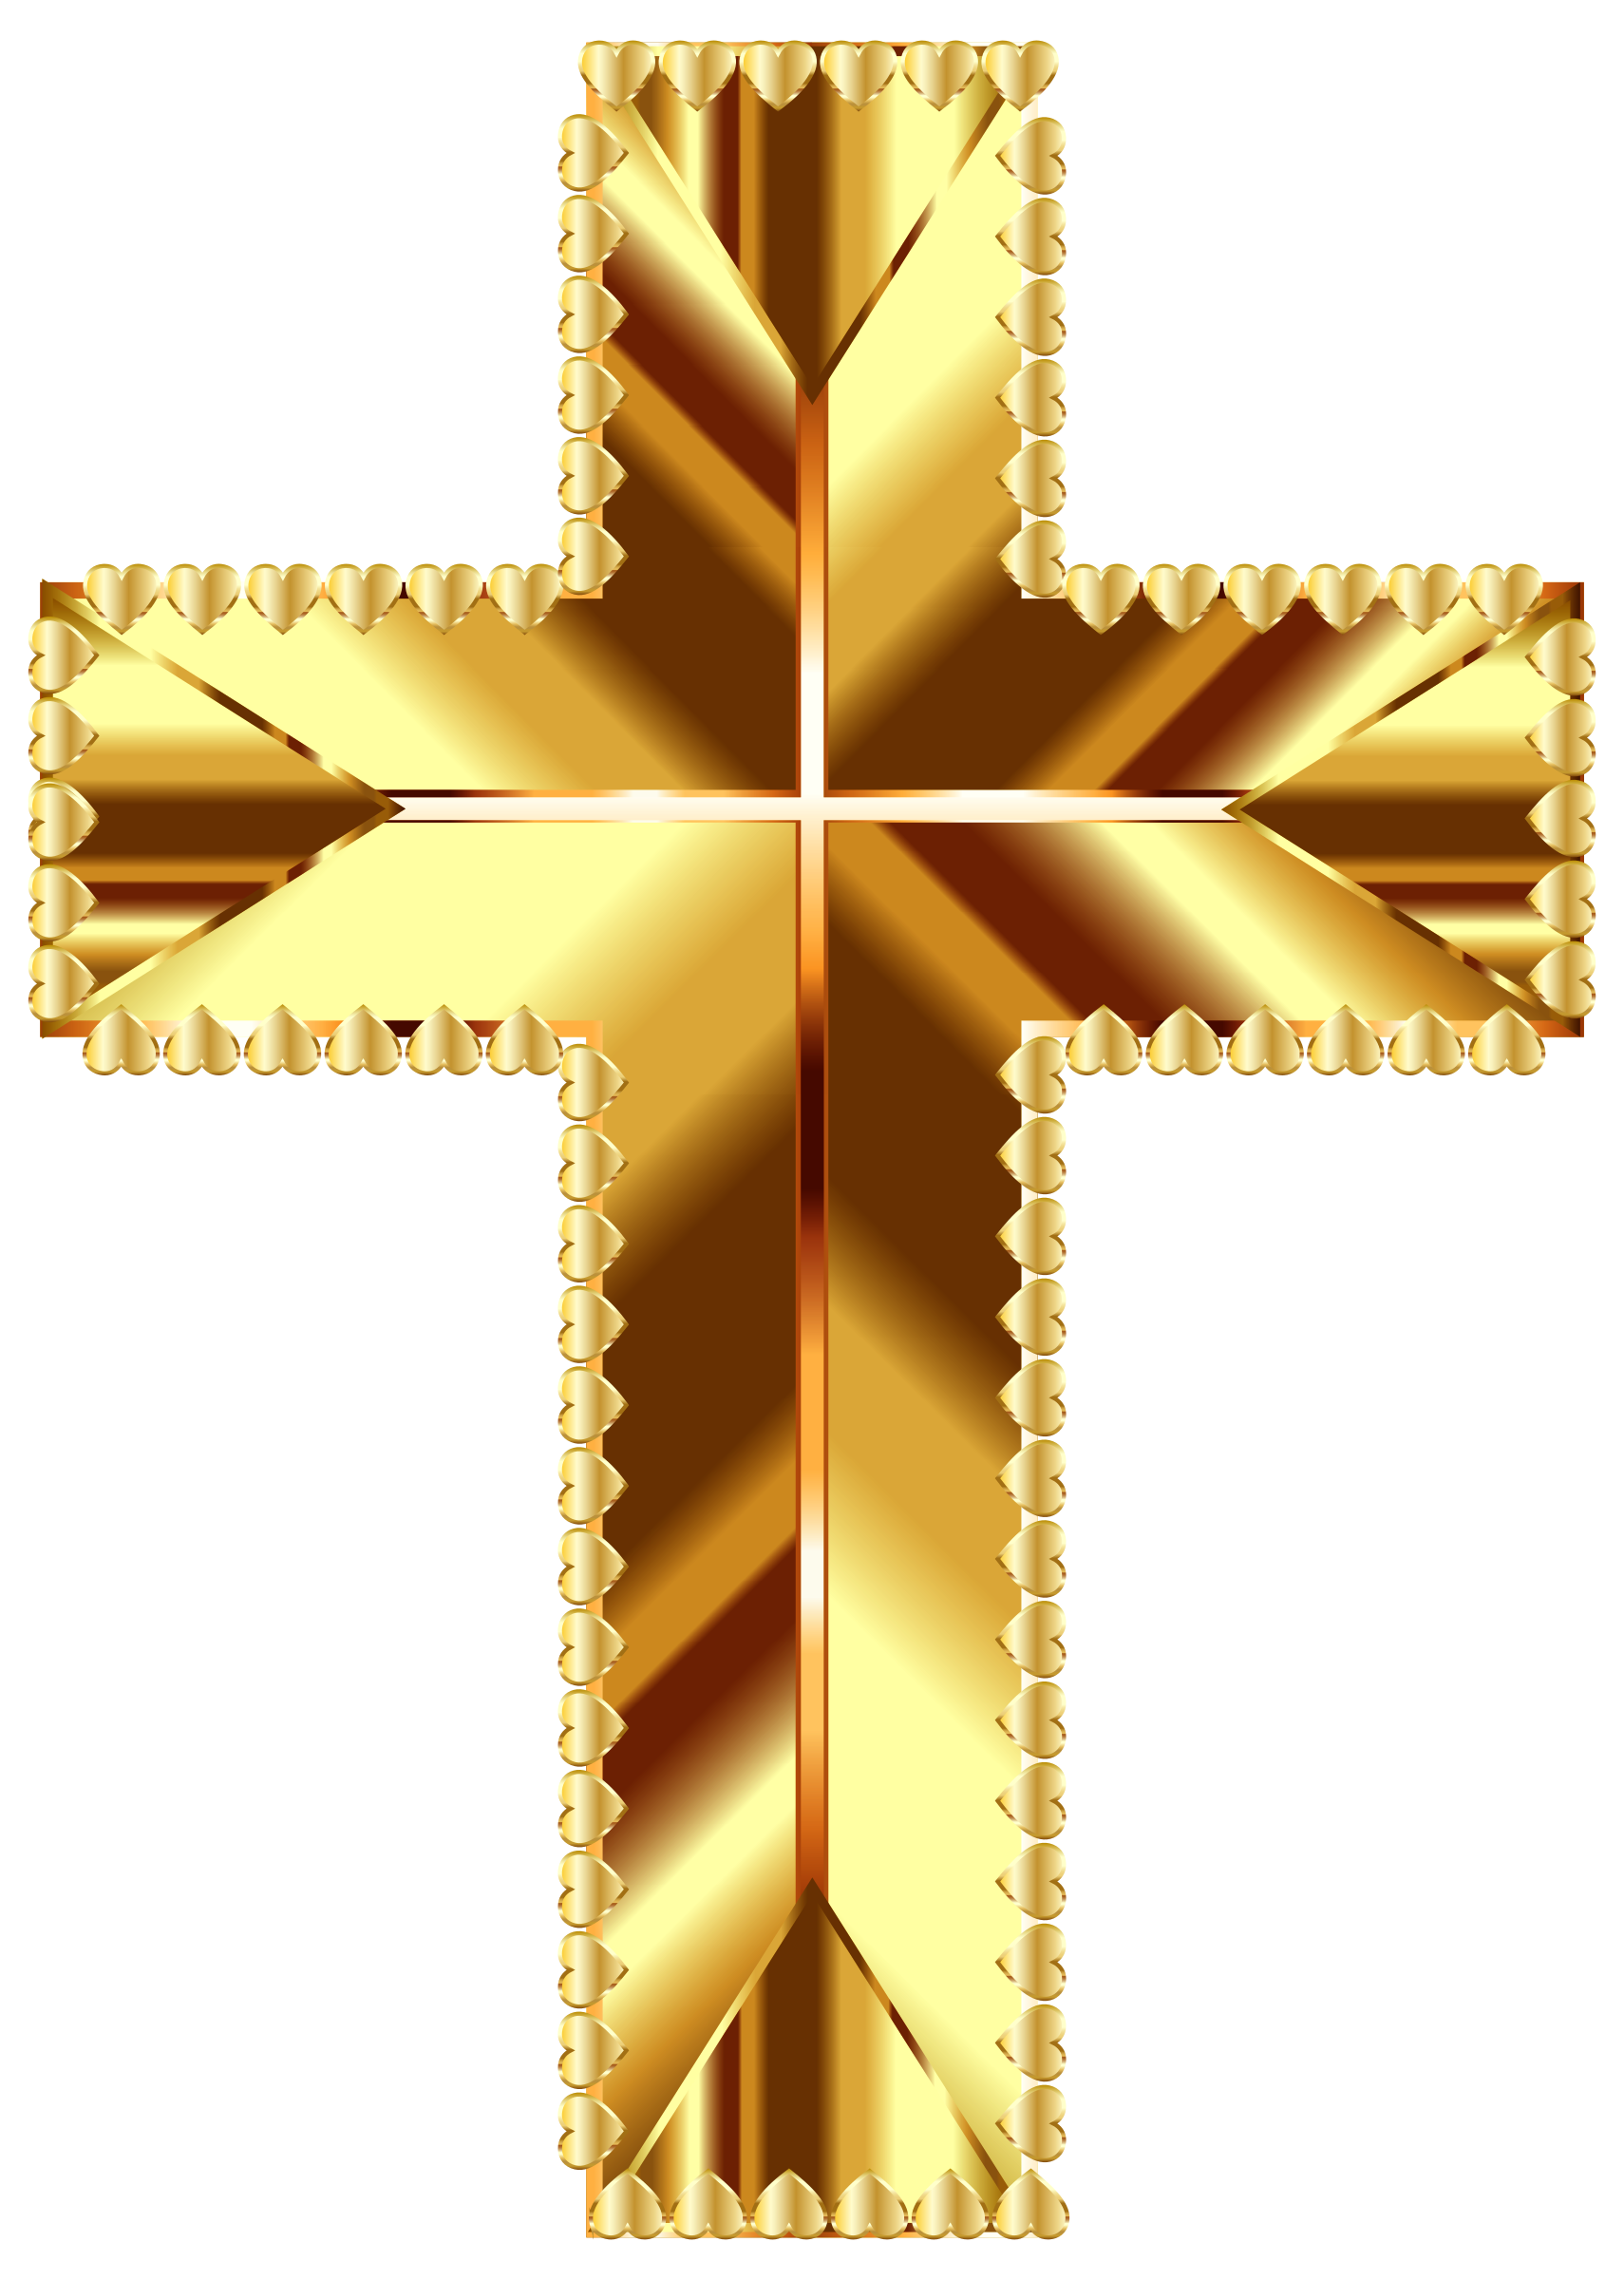 Free Cross Cliparts Color, Download Free Clip Art, Free Clip Art on ... clip art download